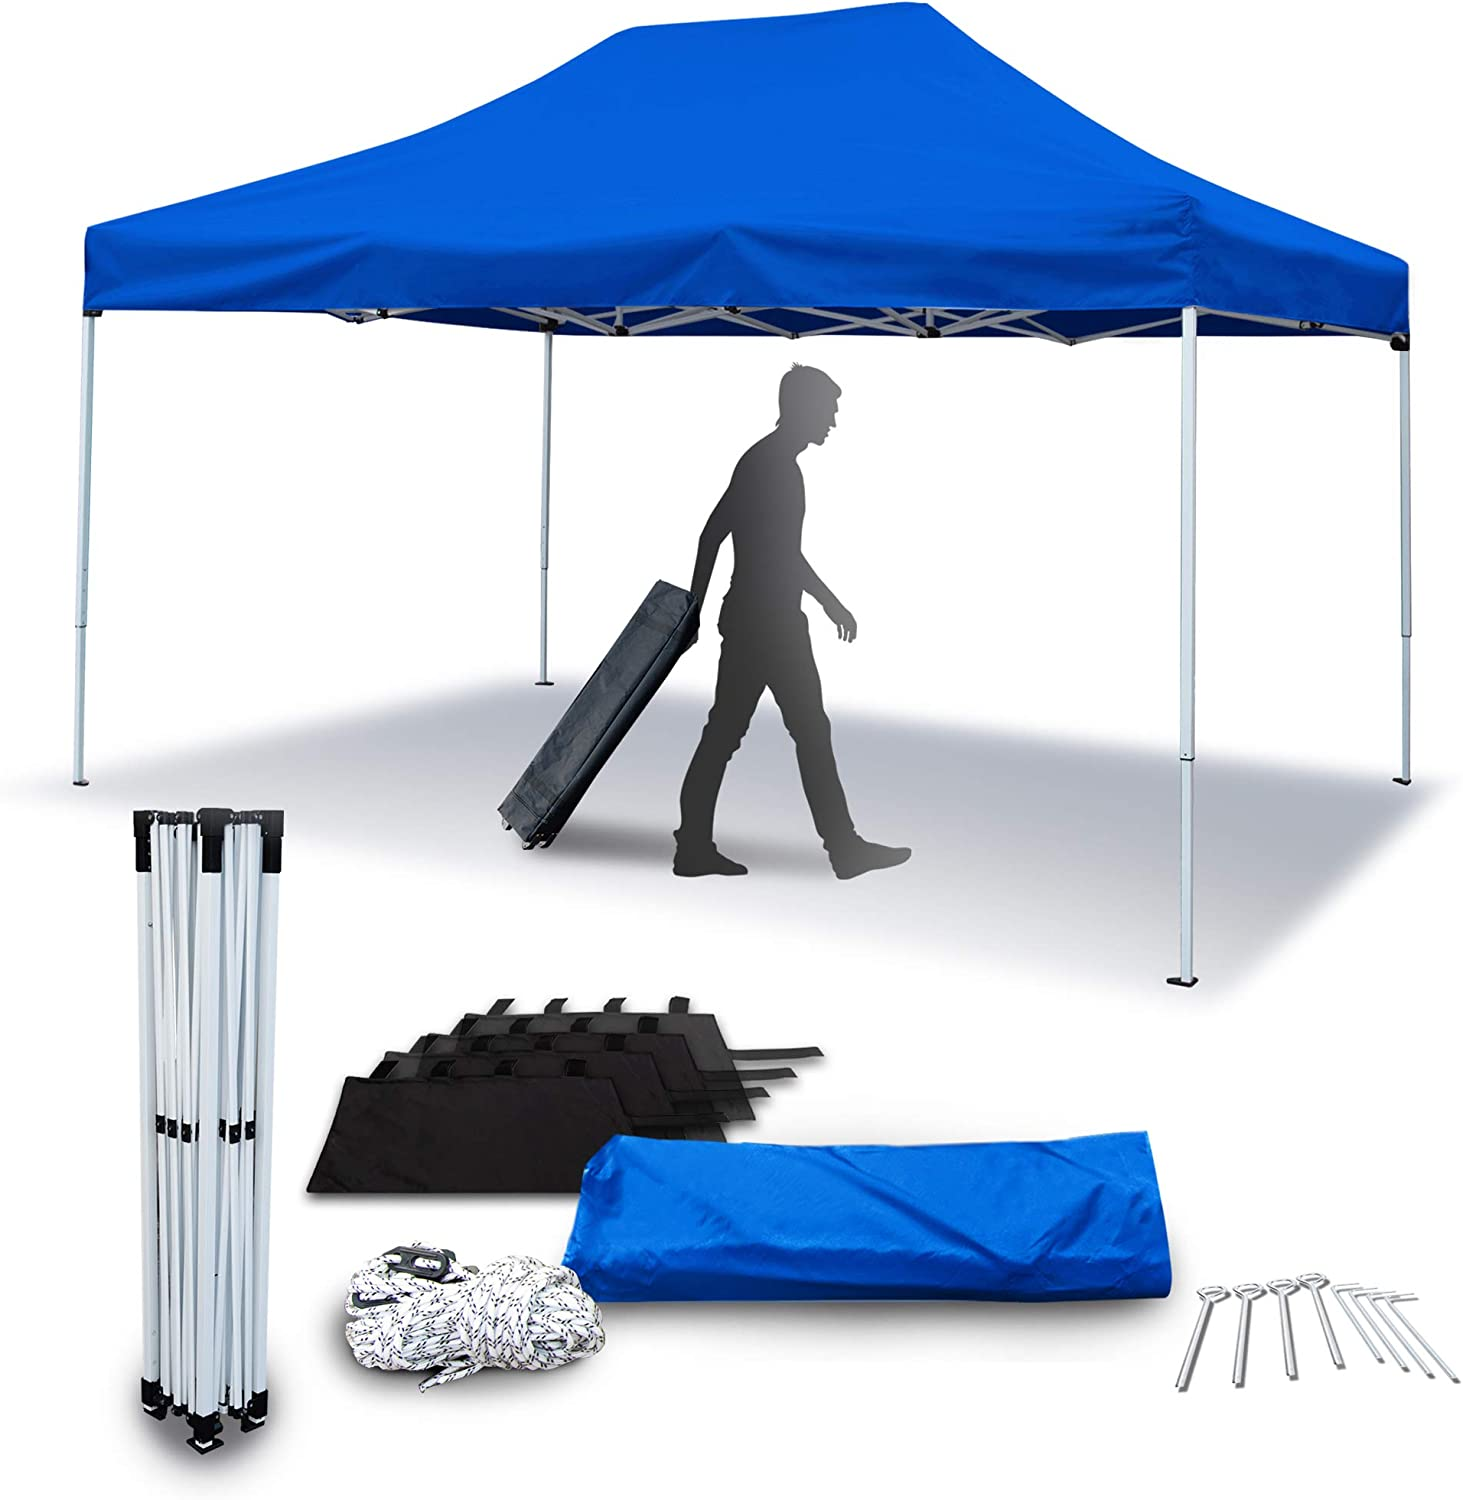 ASTEROUTDOOR 10'x15' Commercial 300 Denier Heavy Duty Water-Resistant Pop Up Canopy Tent with Adjustable Leg Heights Wheeled Carry Bag, Sandbags, Stakes and Ropes, Royal Blue